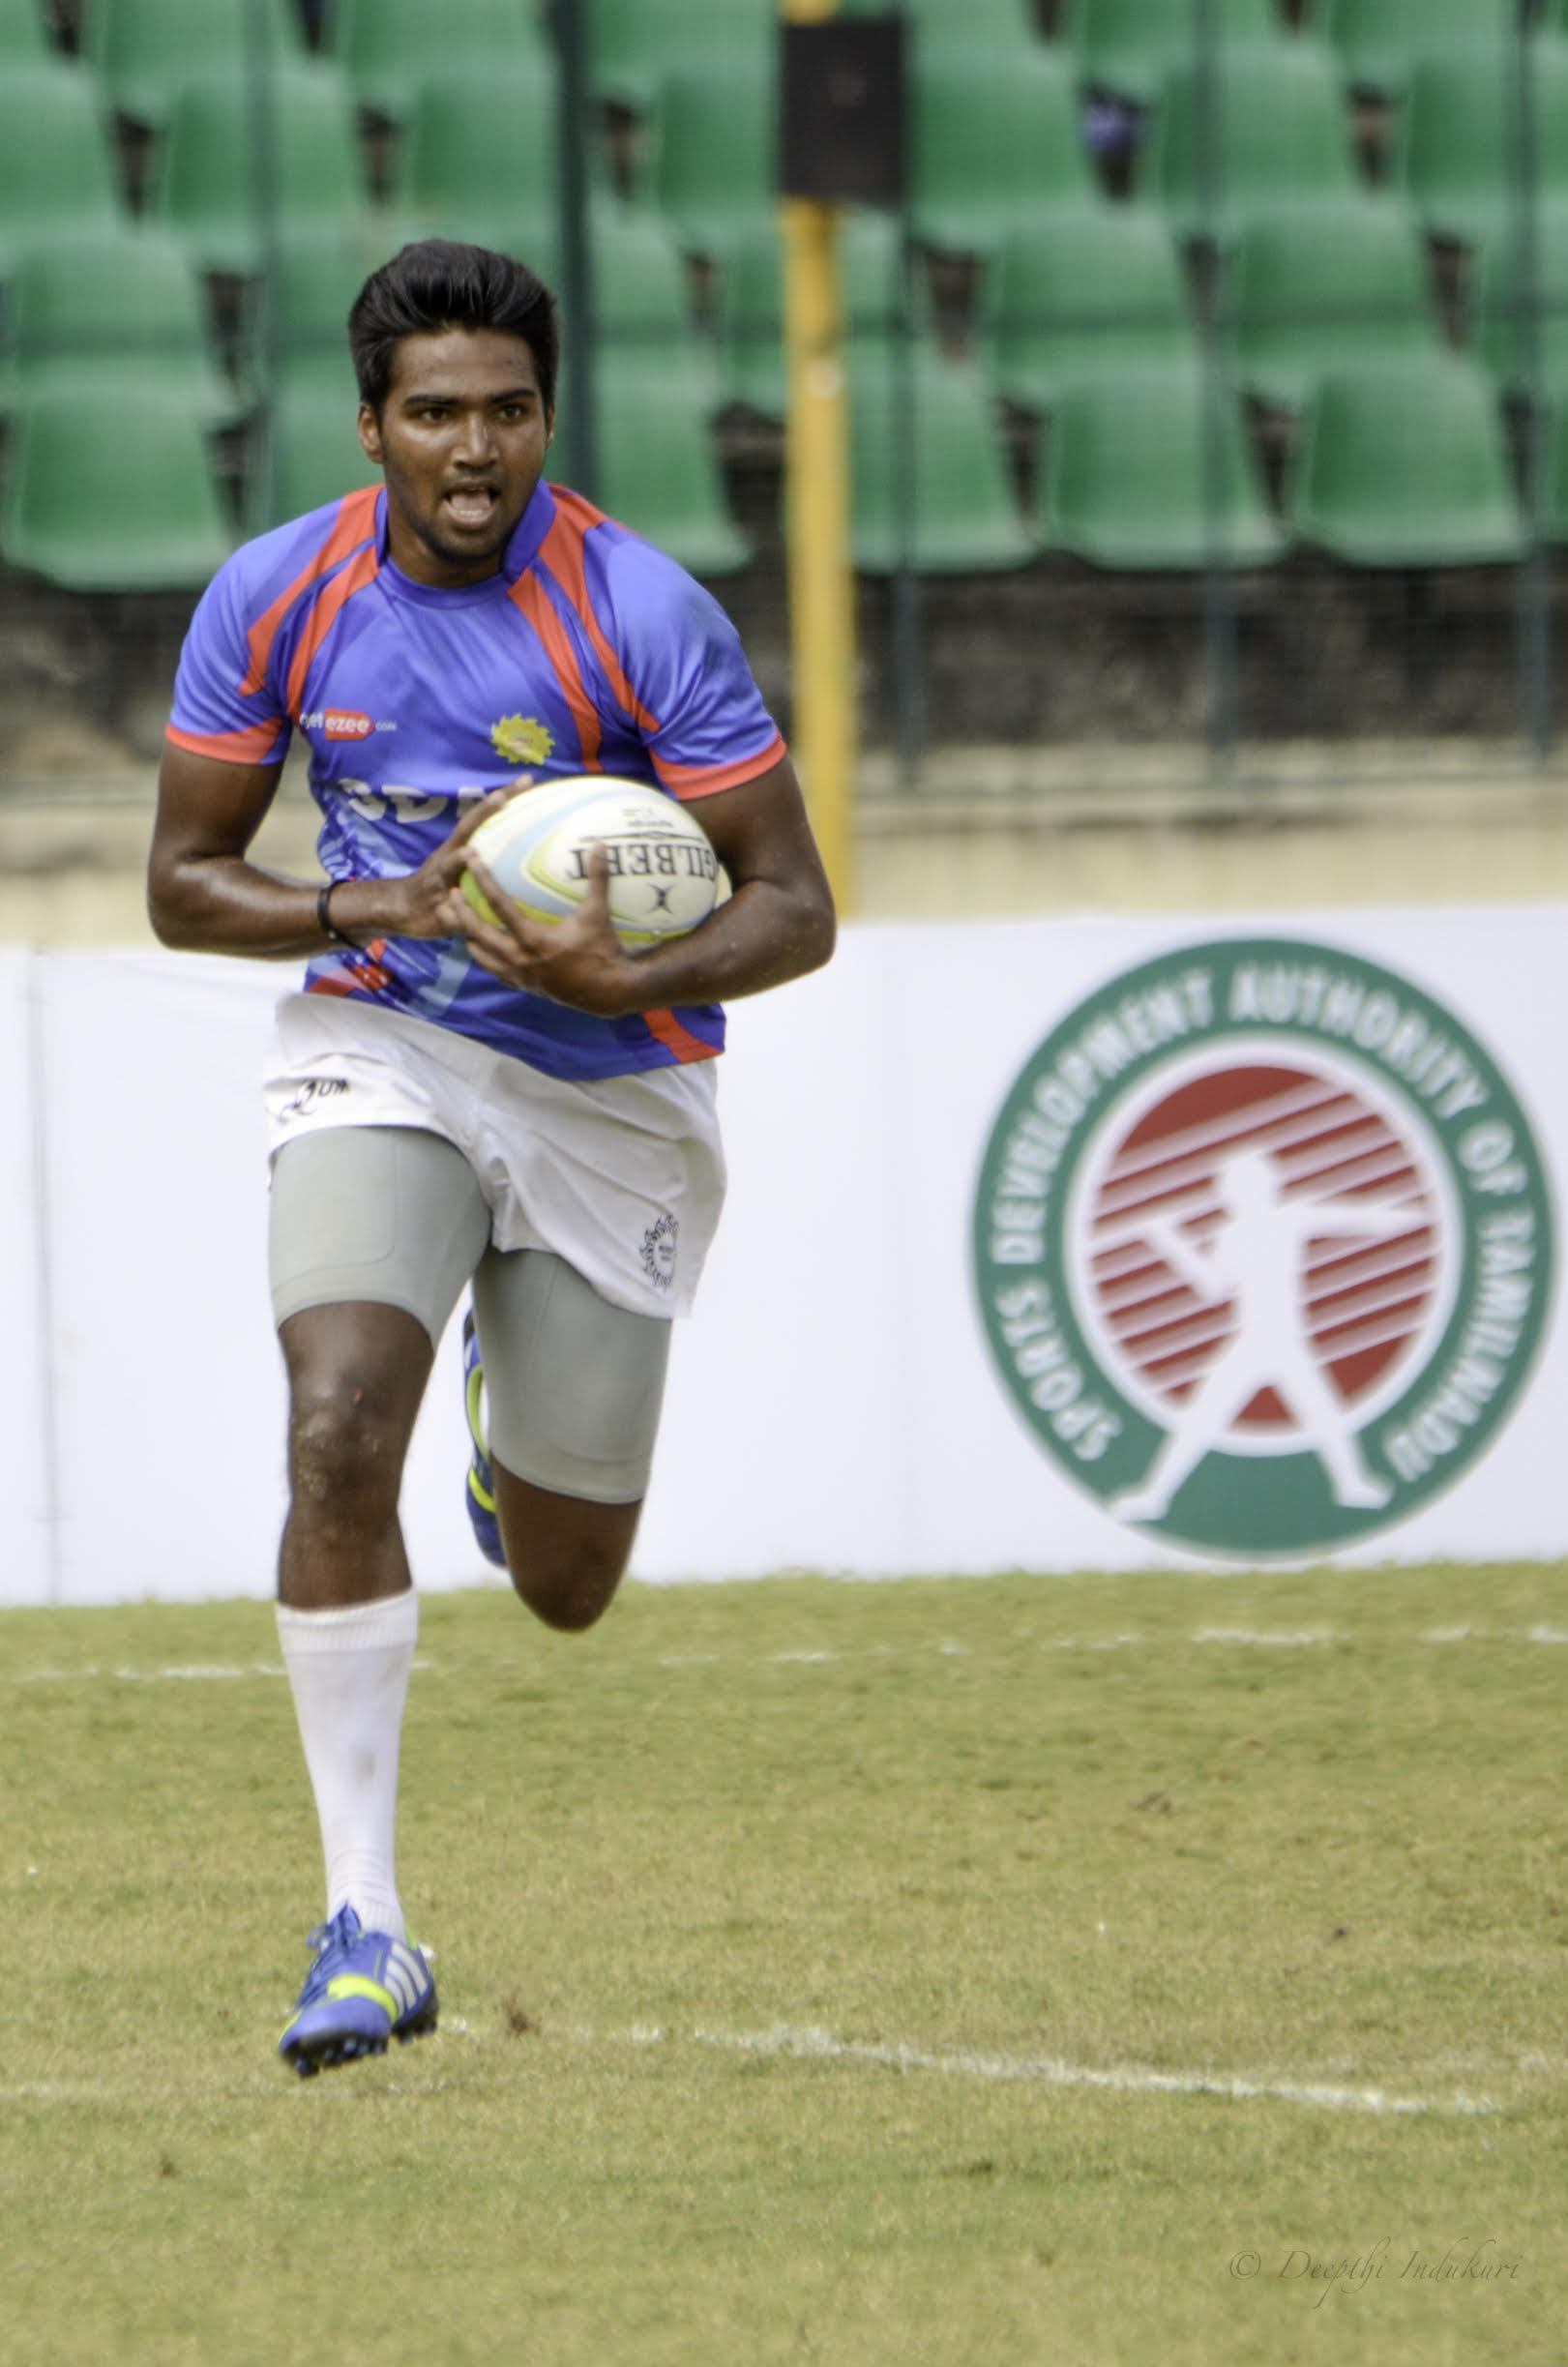 roshan playing rugby